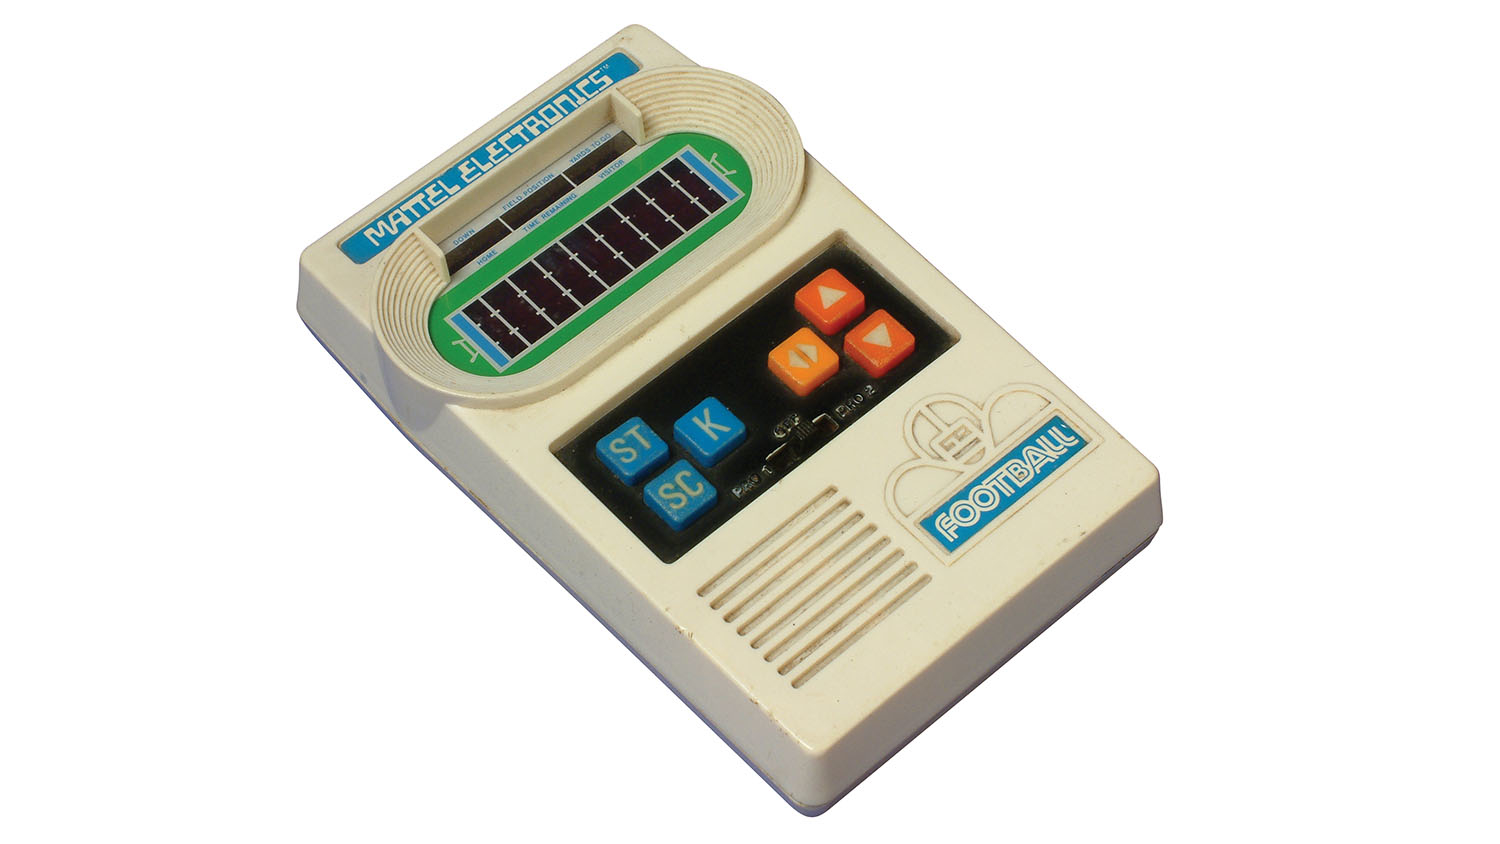 early handheld electronic game from Mattel